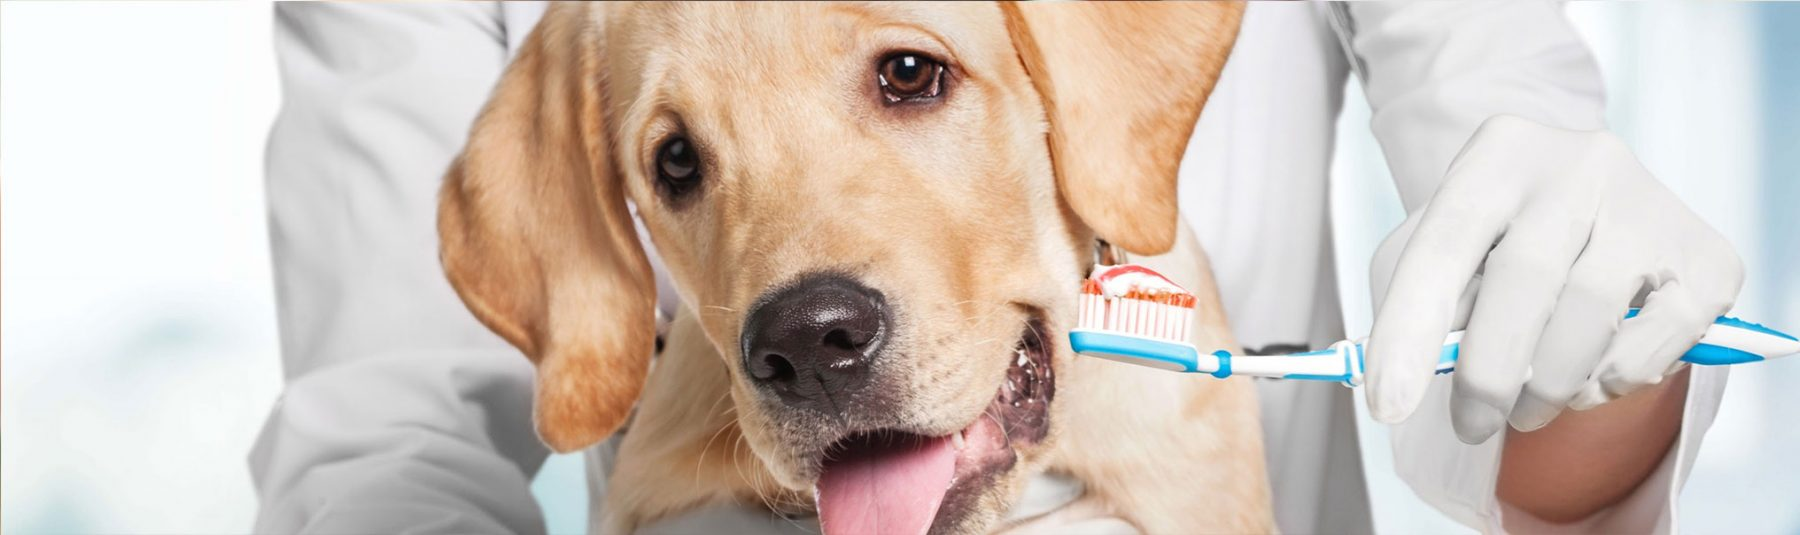 Veterinarian holding a toothbrush in front of a dog